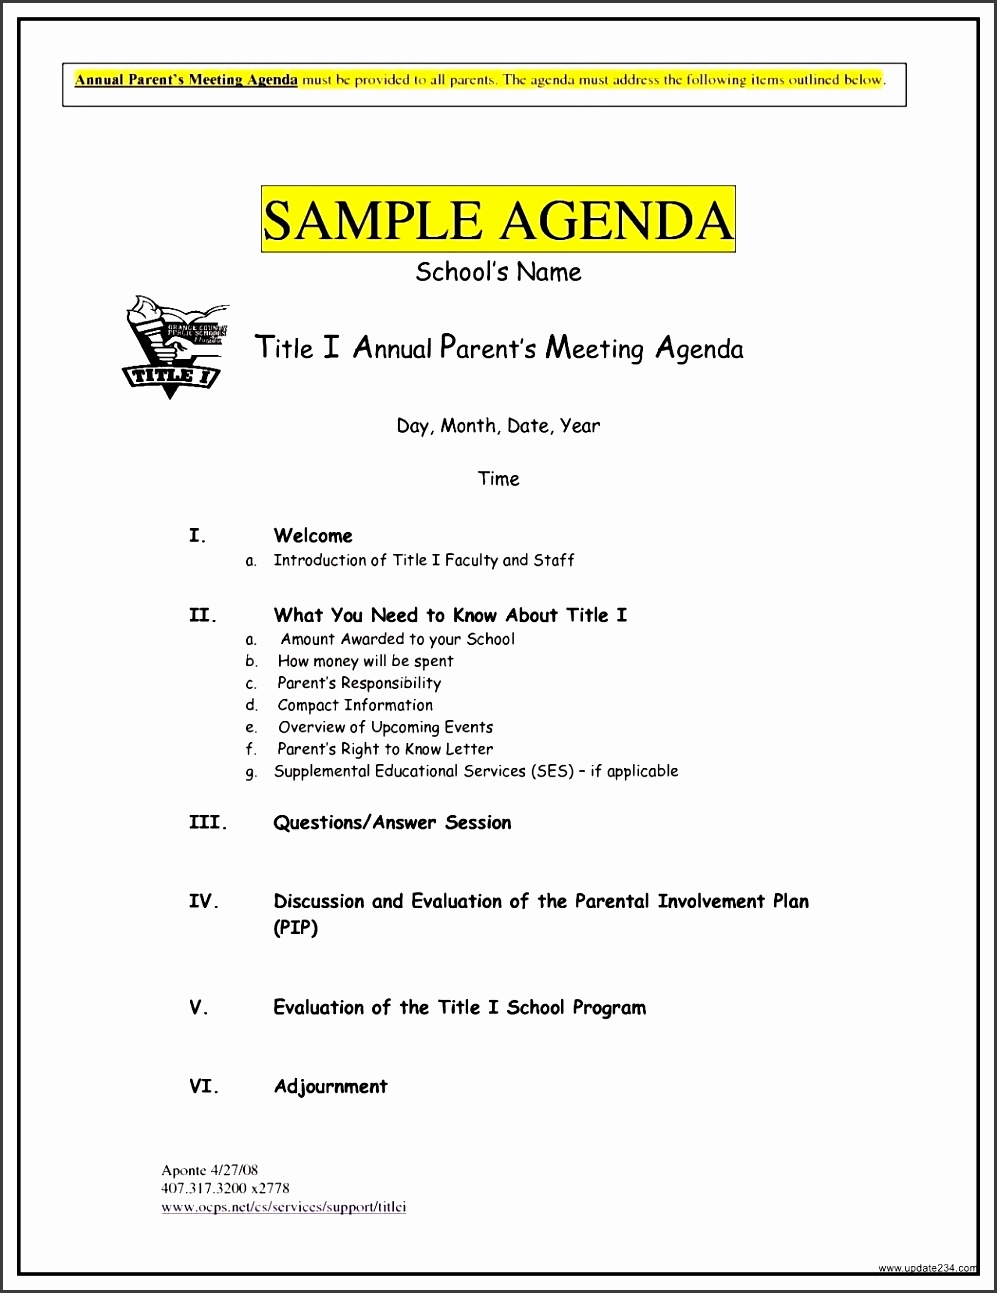 Meeting Agenda Template Word Ms Office Templates Microsoft Format Free  Agenda An Image Part Of  Formal Meeting Agenda Template